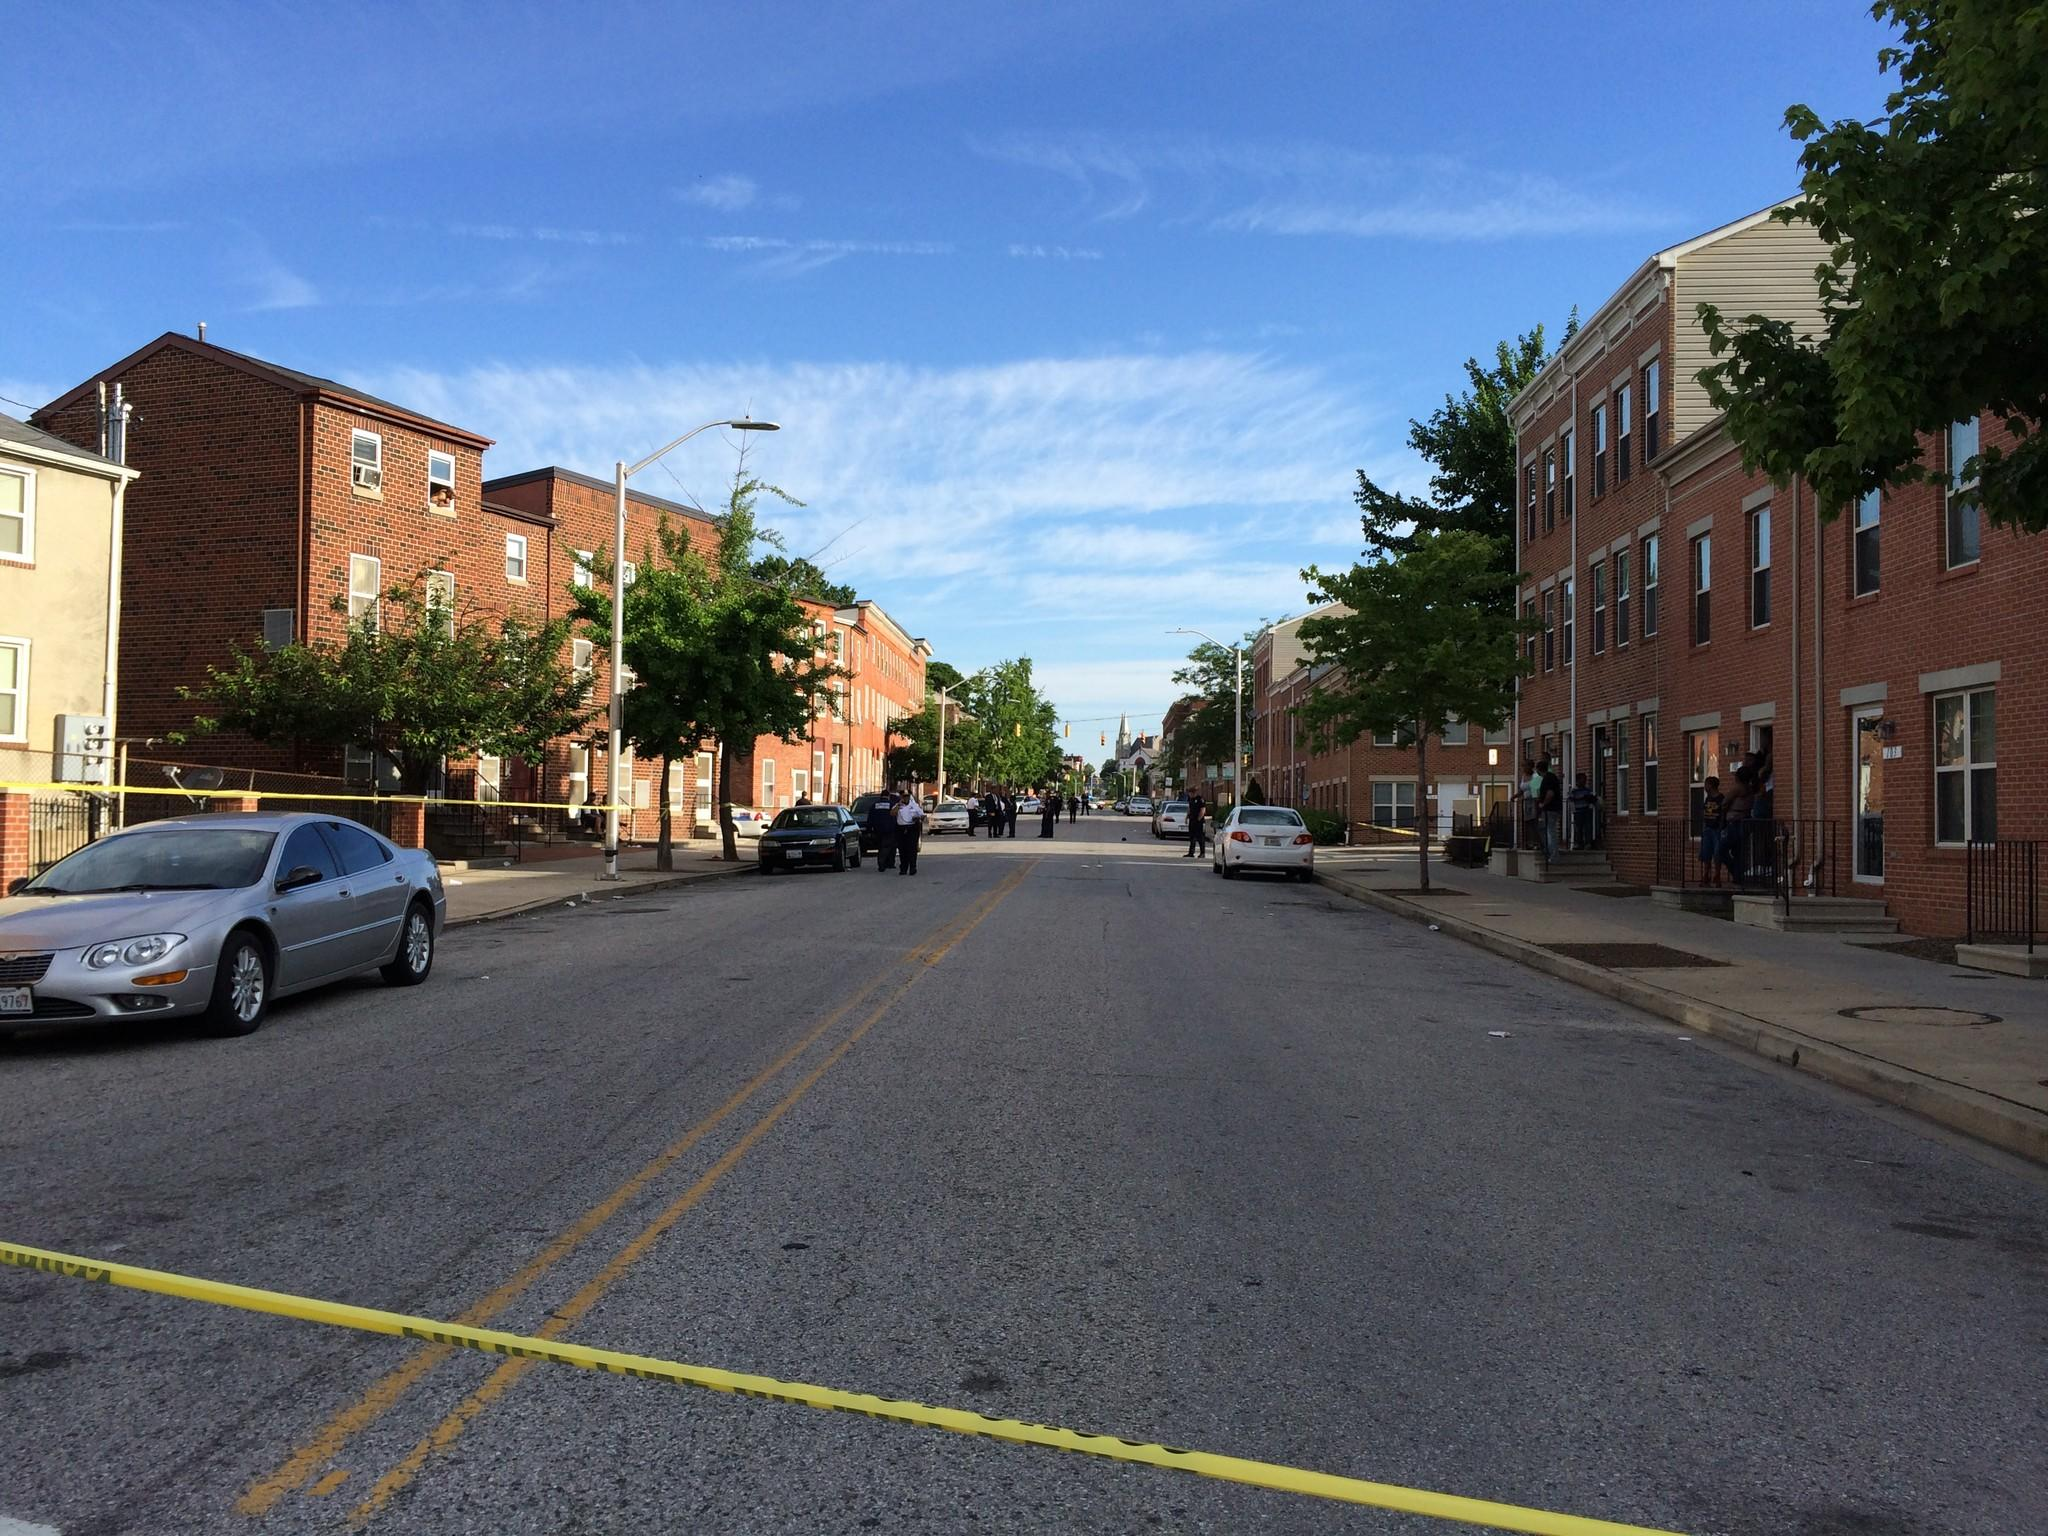 Officers investigate the scene of a police-involved shooting in the area of West Fayette Street and North Fremont Avenue in Baltimore.